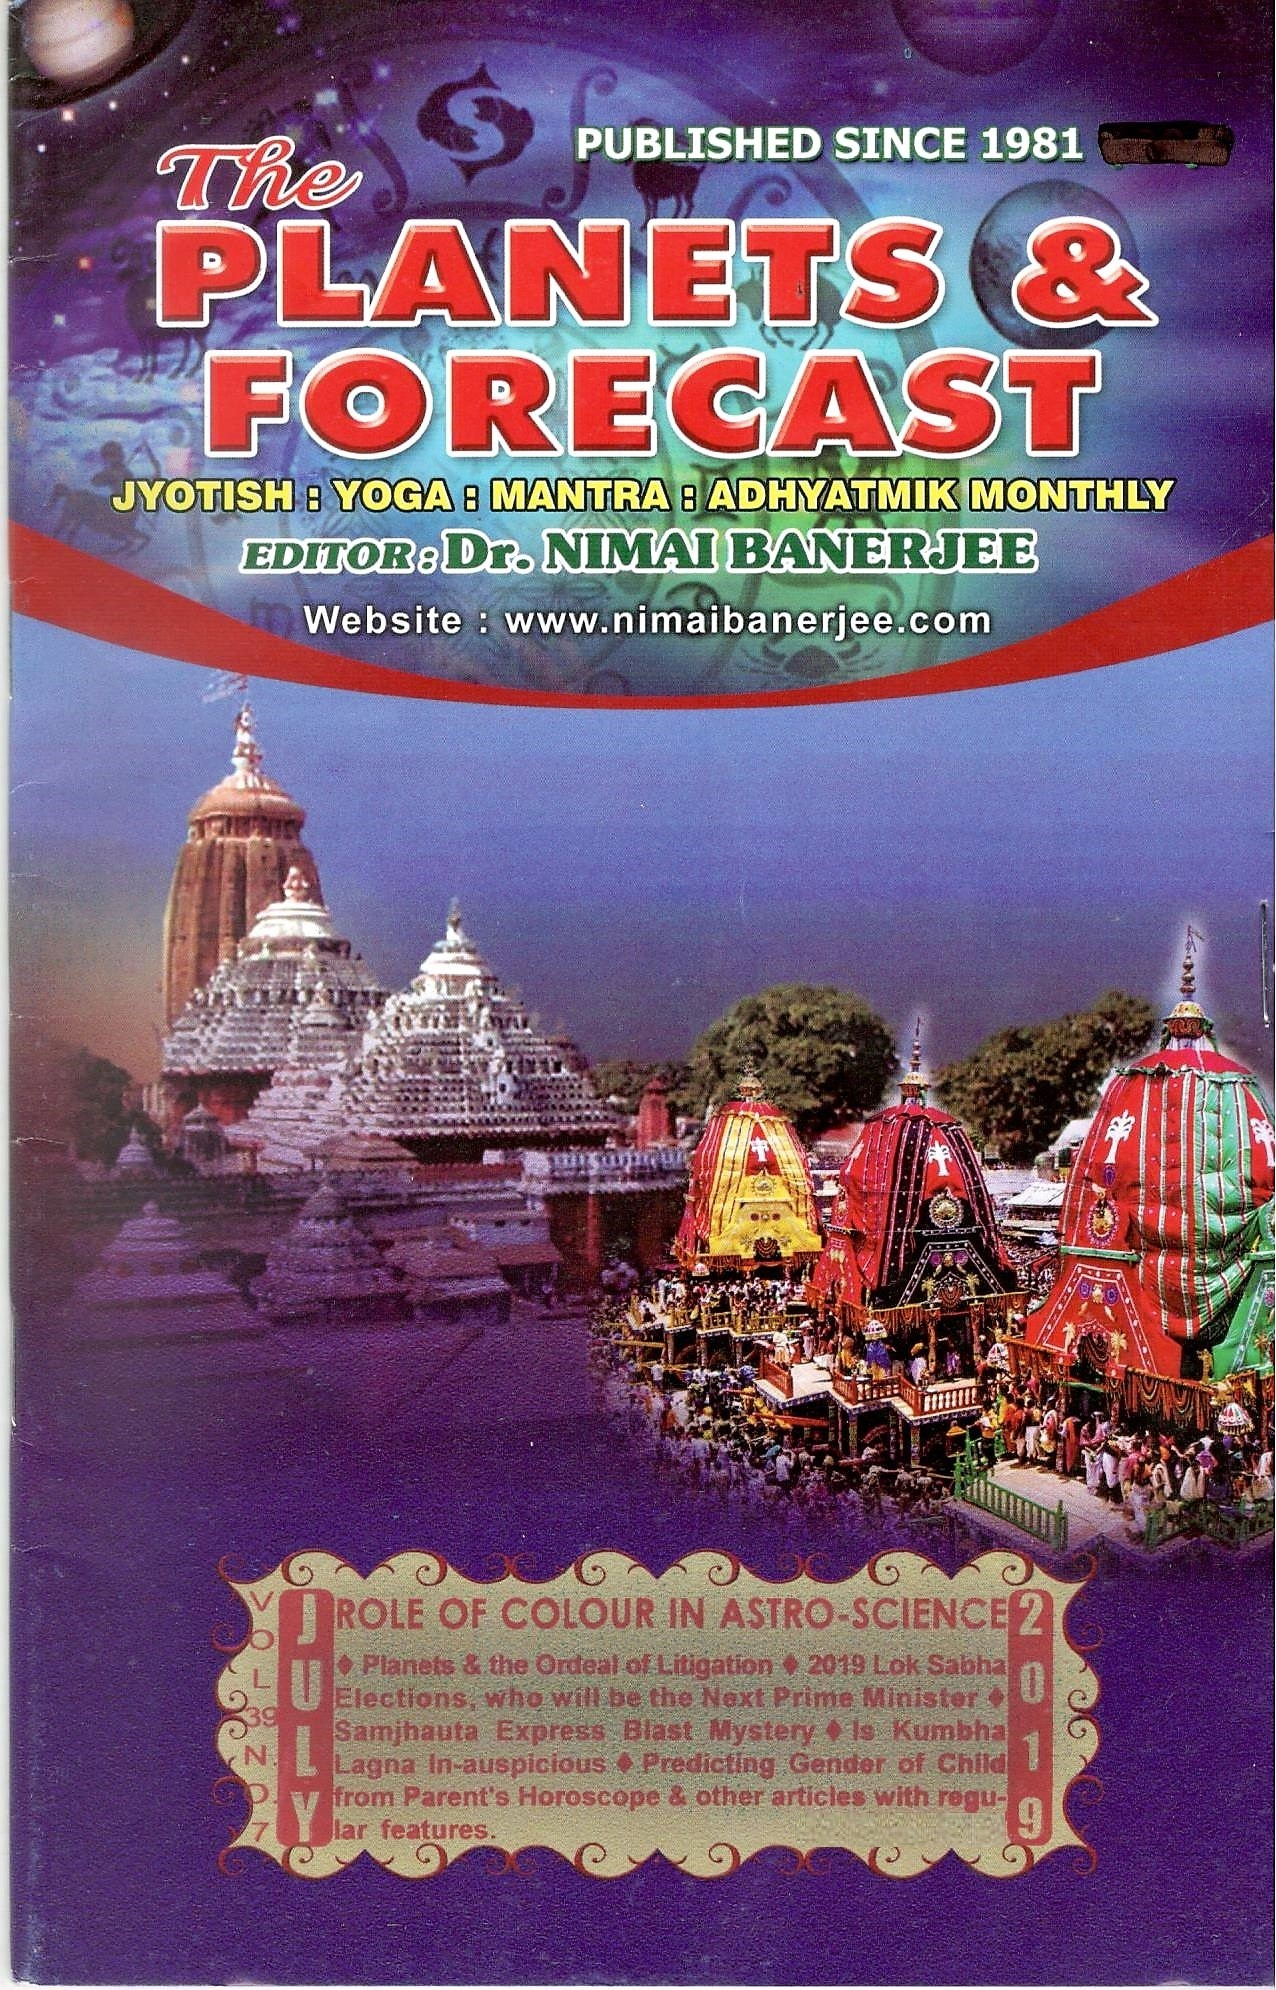 Planets & Forecast Monthly Magazine -July 2019(Cuttack) - Rs